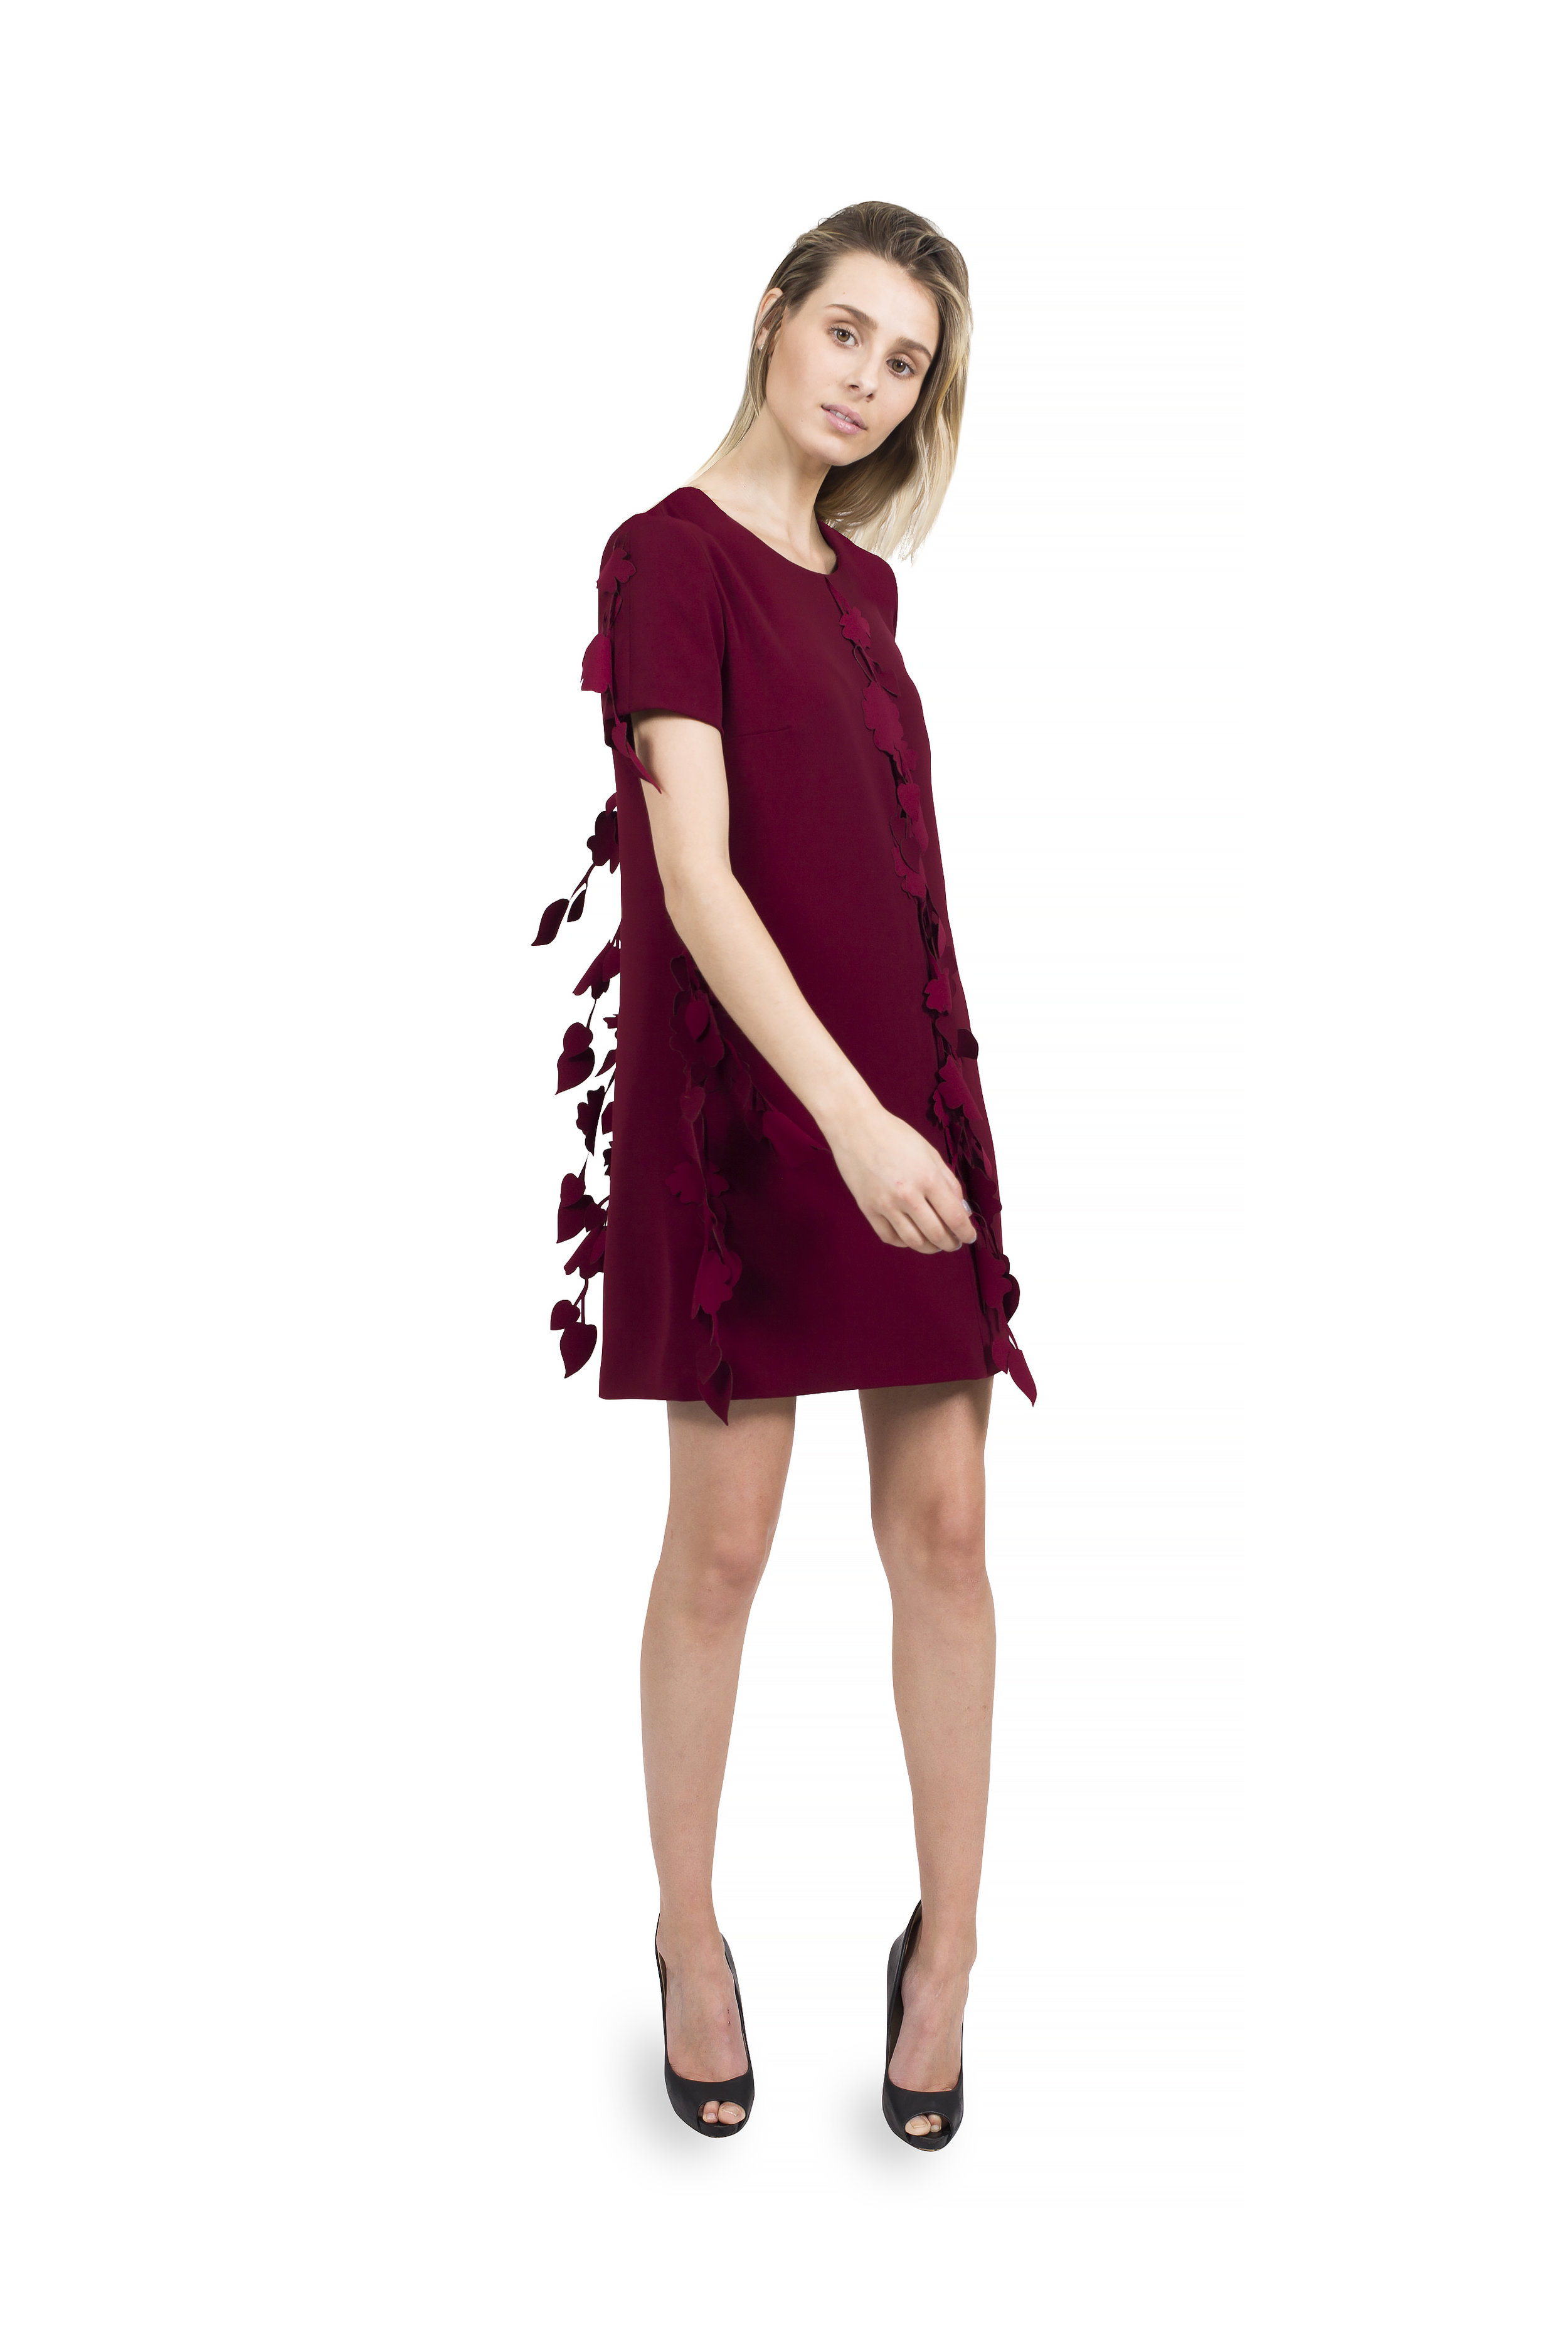 #233 Jewel Neck Arak Dress with Sleeves and Cherry Blossom Detail at Seams.jpg